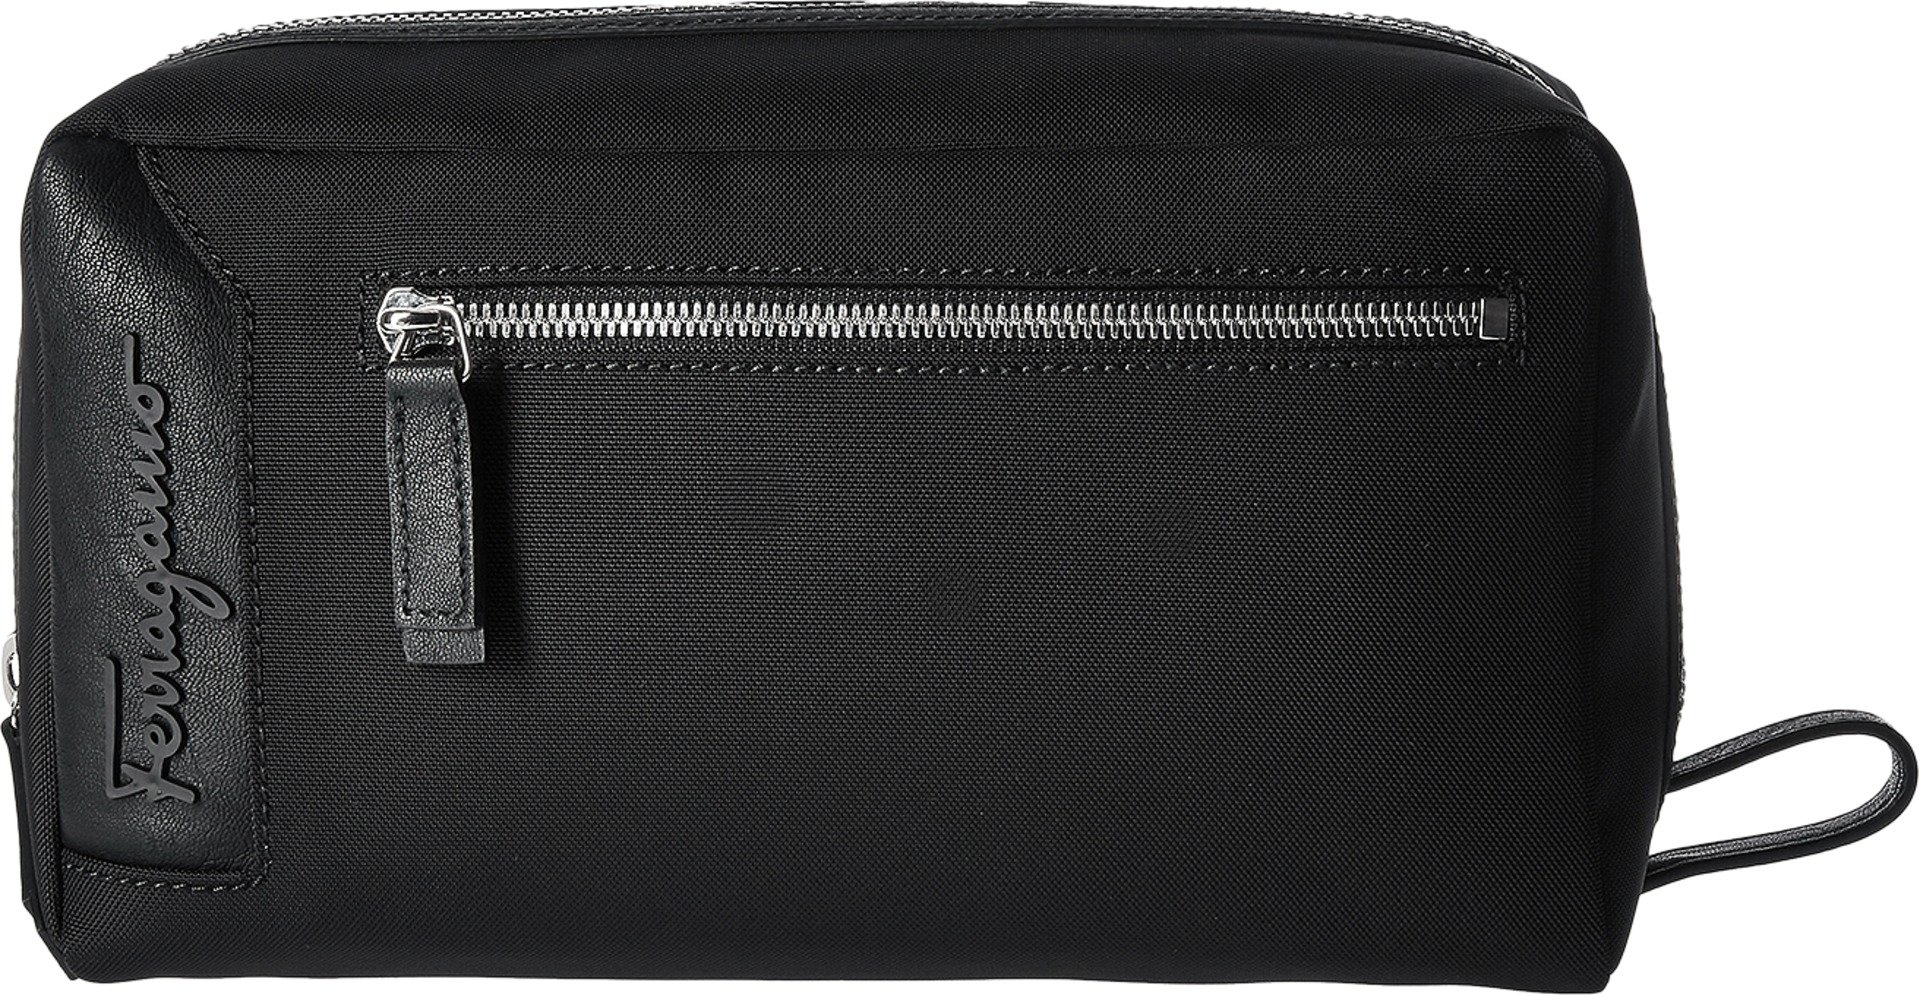 Salvatore Ferragamo Men's Capsule Now Dopp Kit - 240362 Black Cosmetic Bag